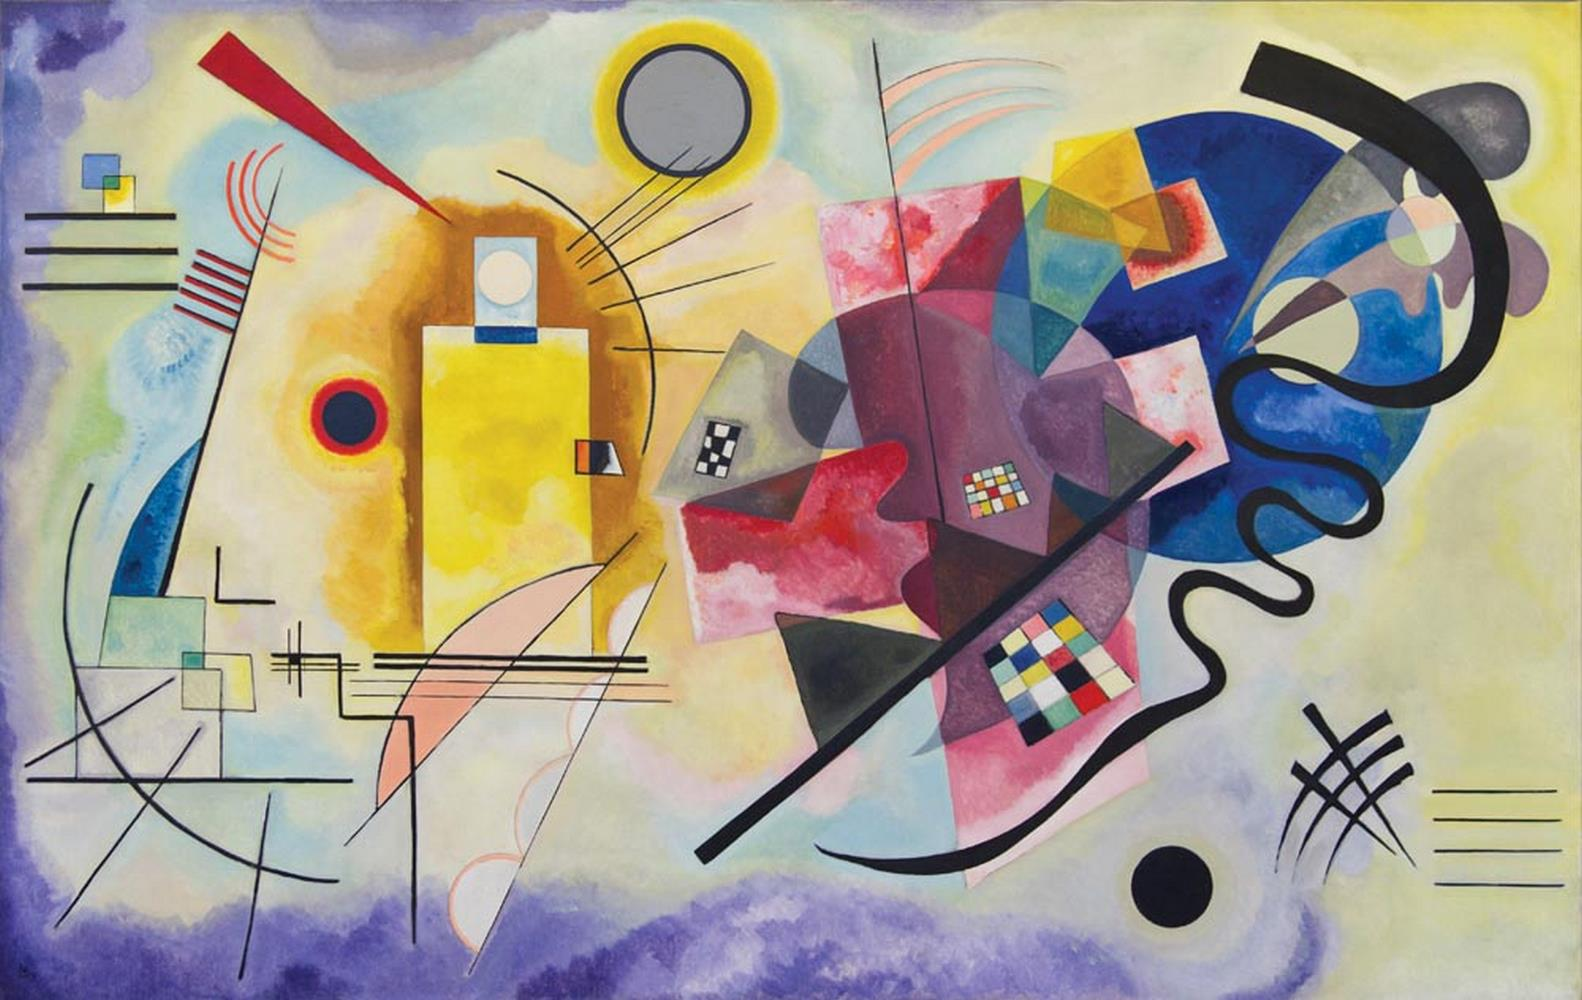 Giallo, rosso, blu, Kandinsky Carta da parati MyCollection